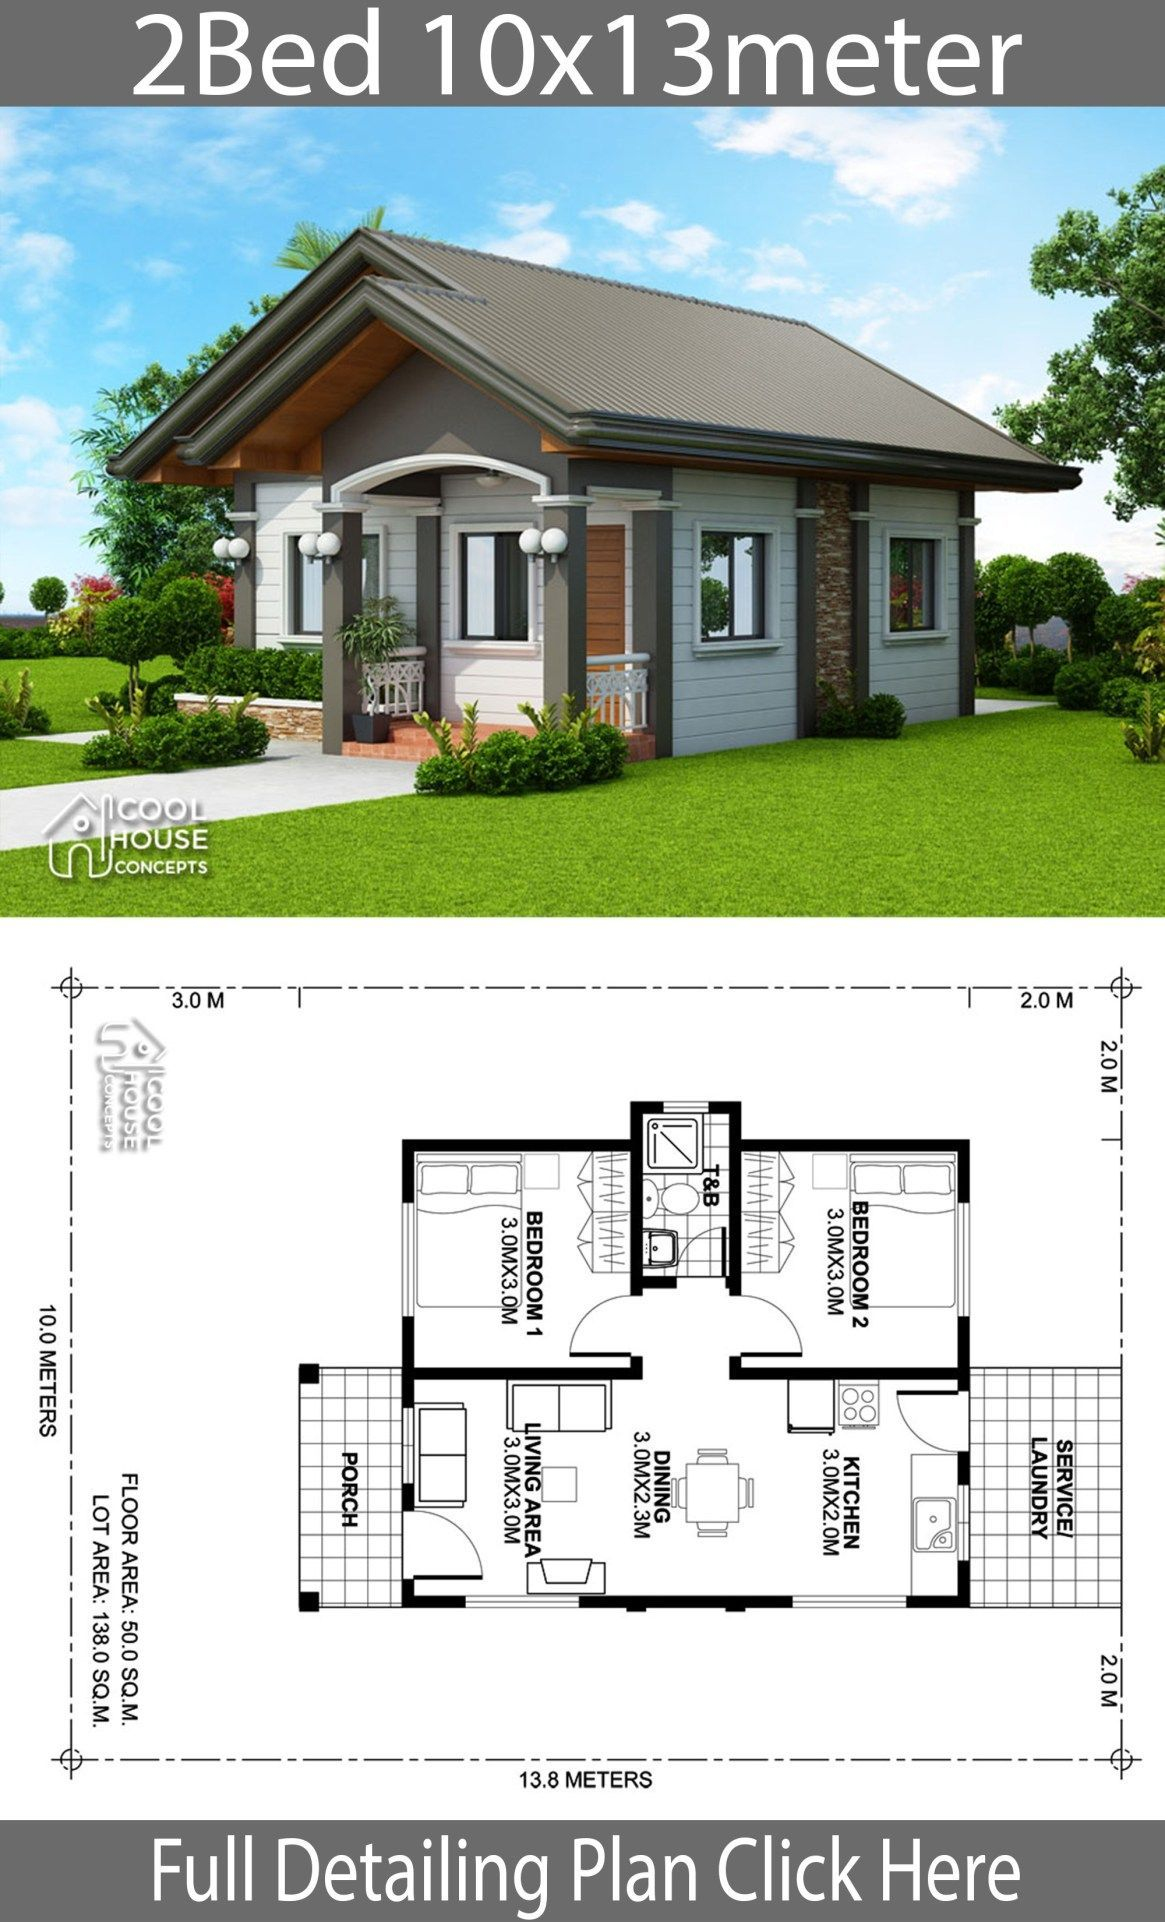 Home Design Plan 10x13m With 2 Bedrooms Home Ideas Simple House Design Modern House Plans Modern Bungalow House